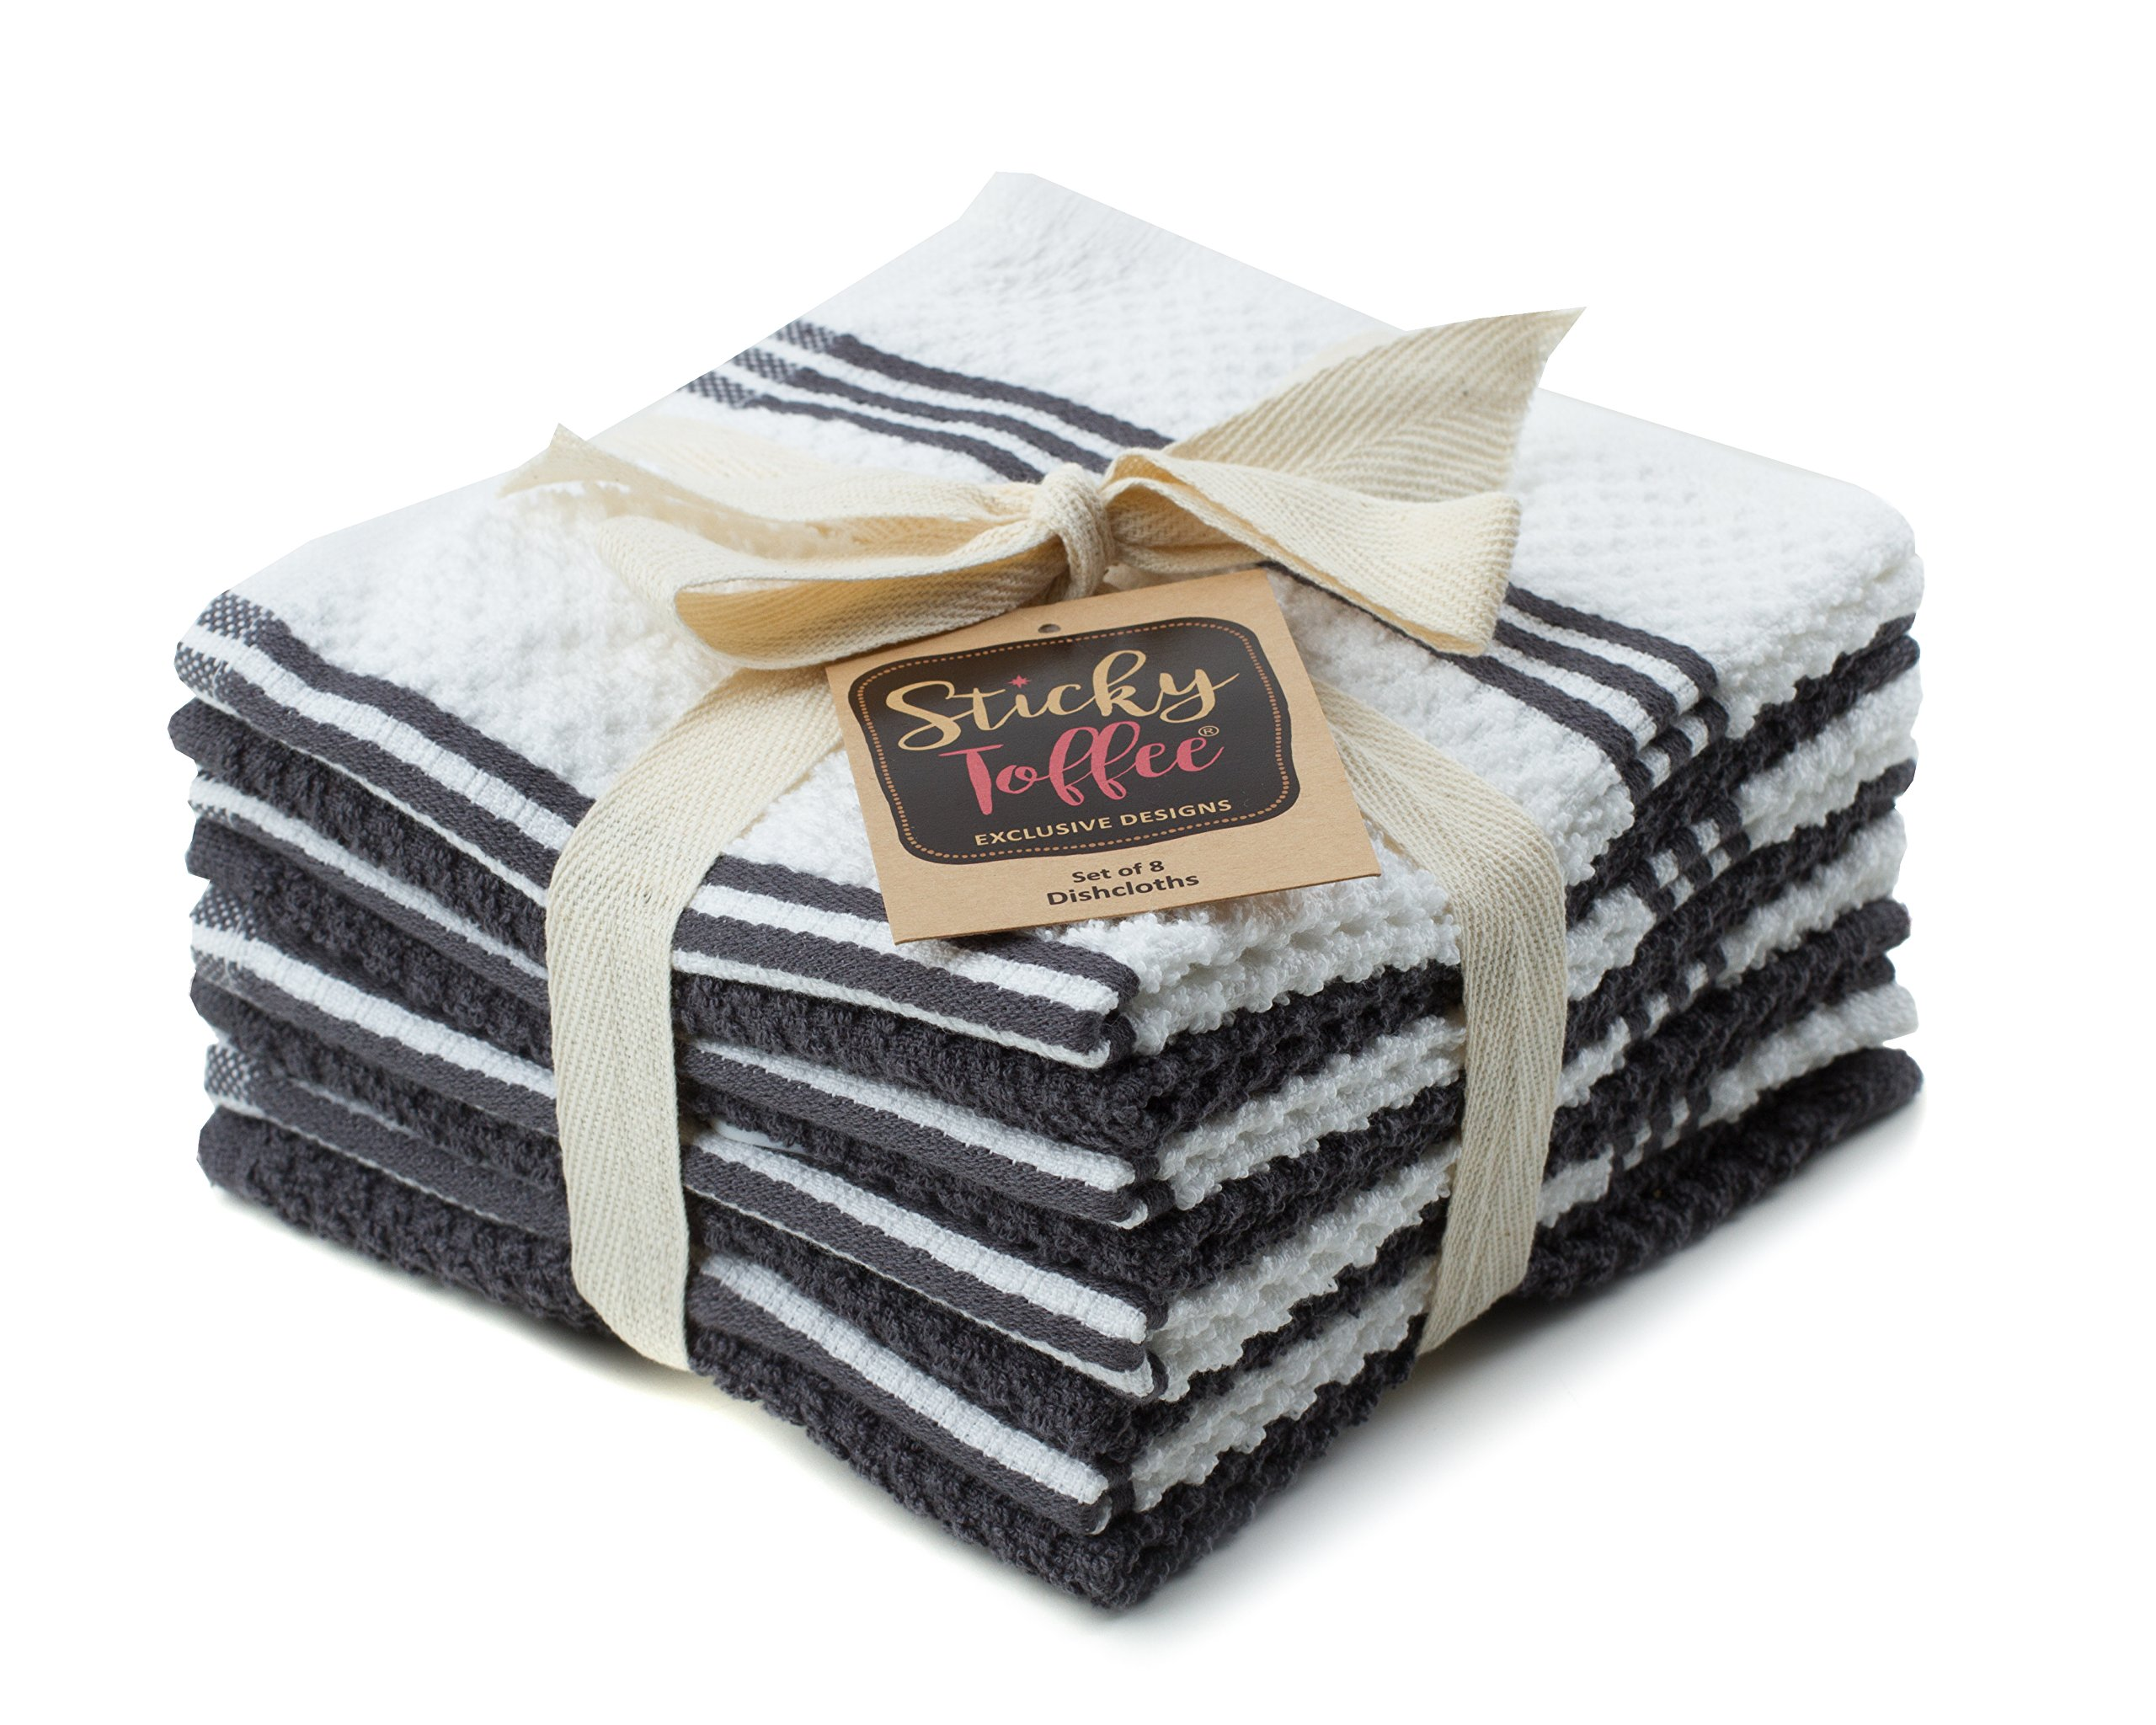 Sticky Toffee Cotton Terry Kitchen Dishcloth, Gray, 8 Pack, 12 in x 12 in by Sticky Toffee (Image #4)